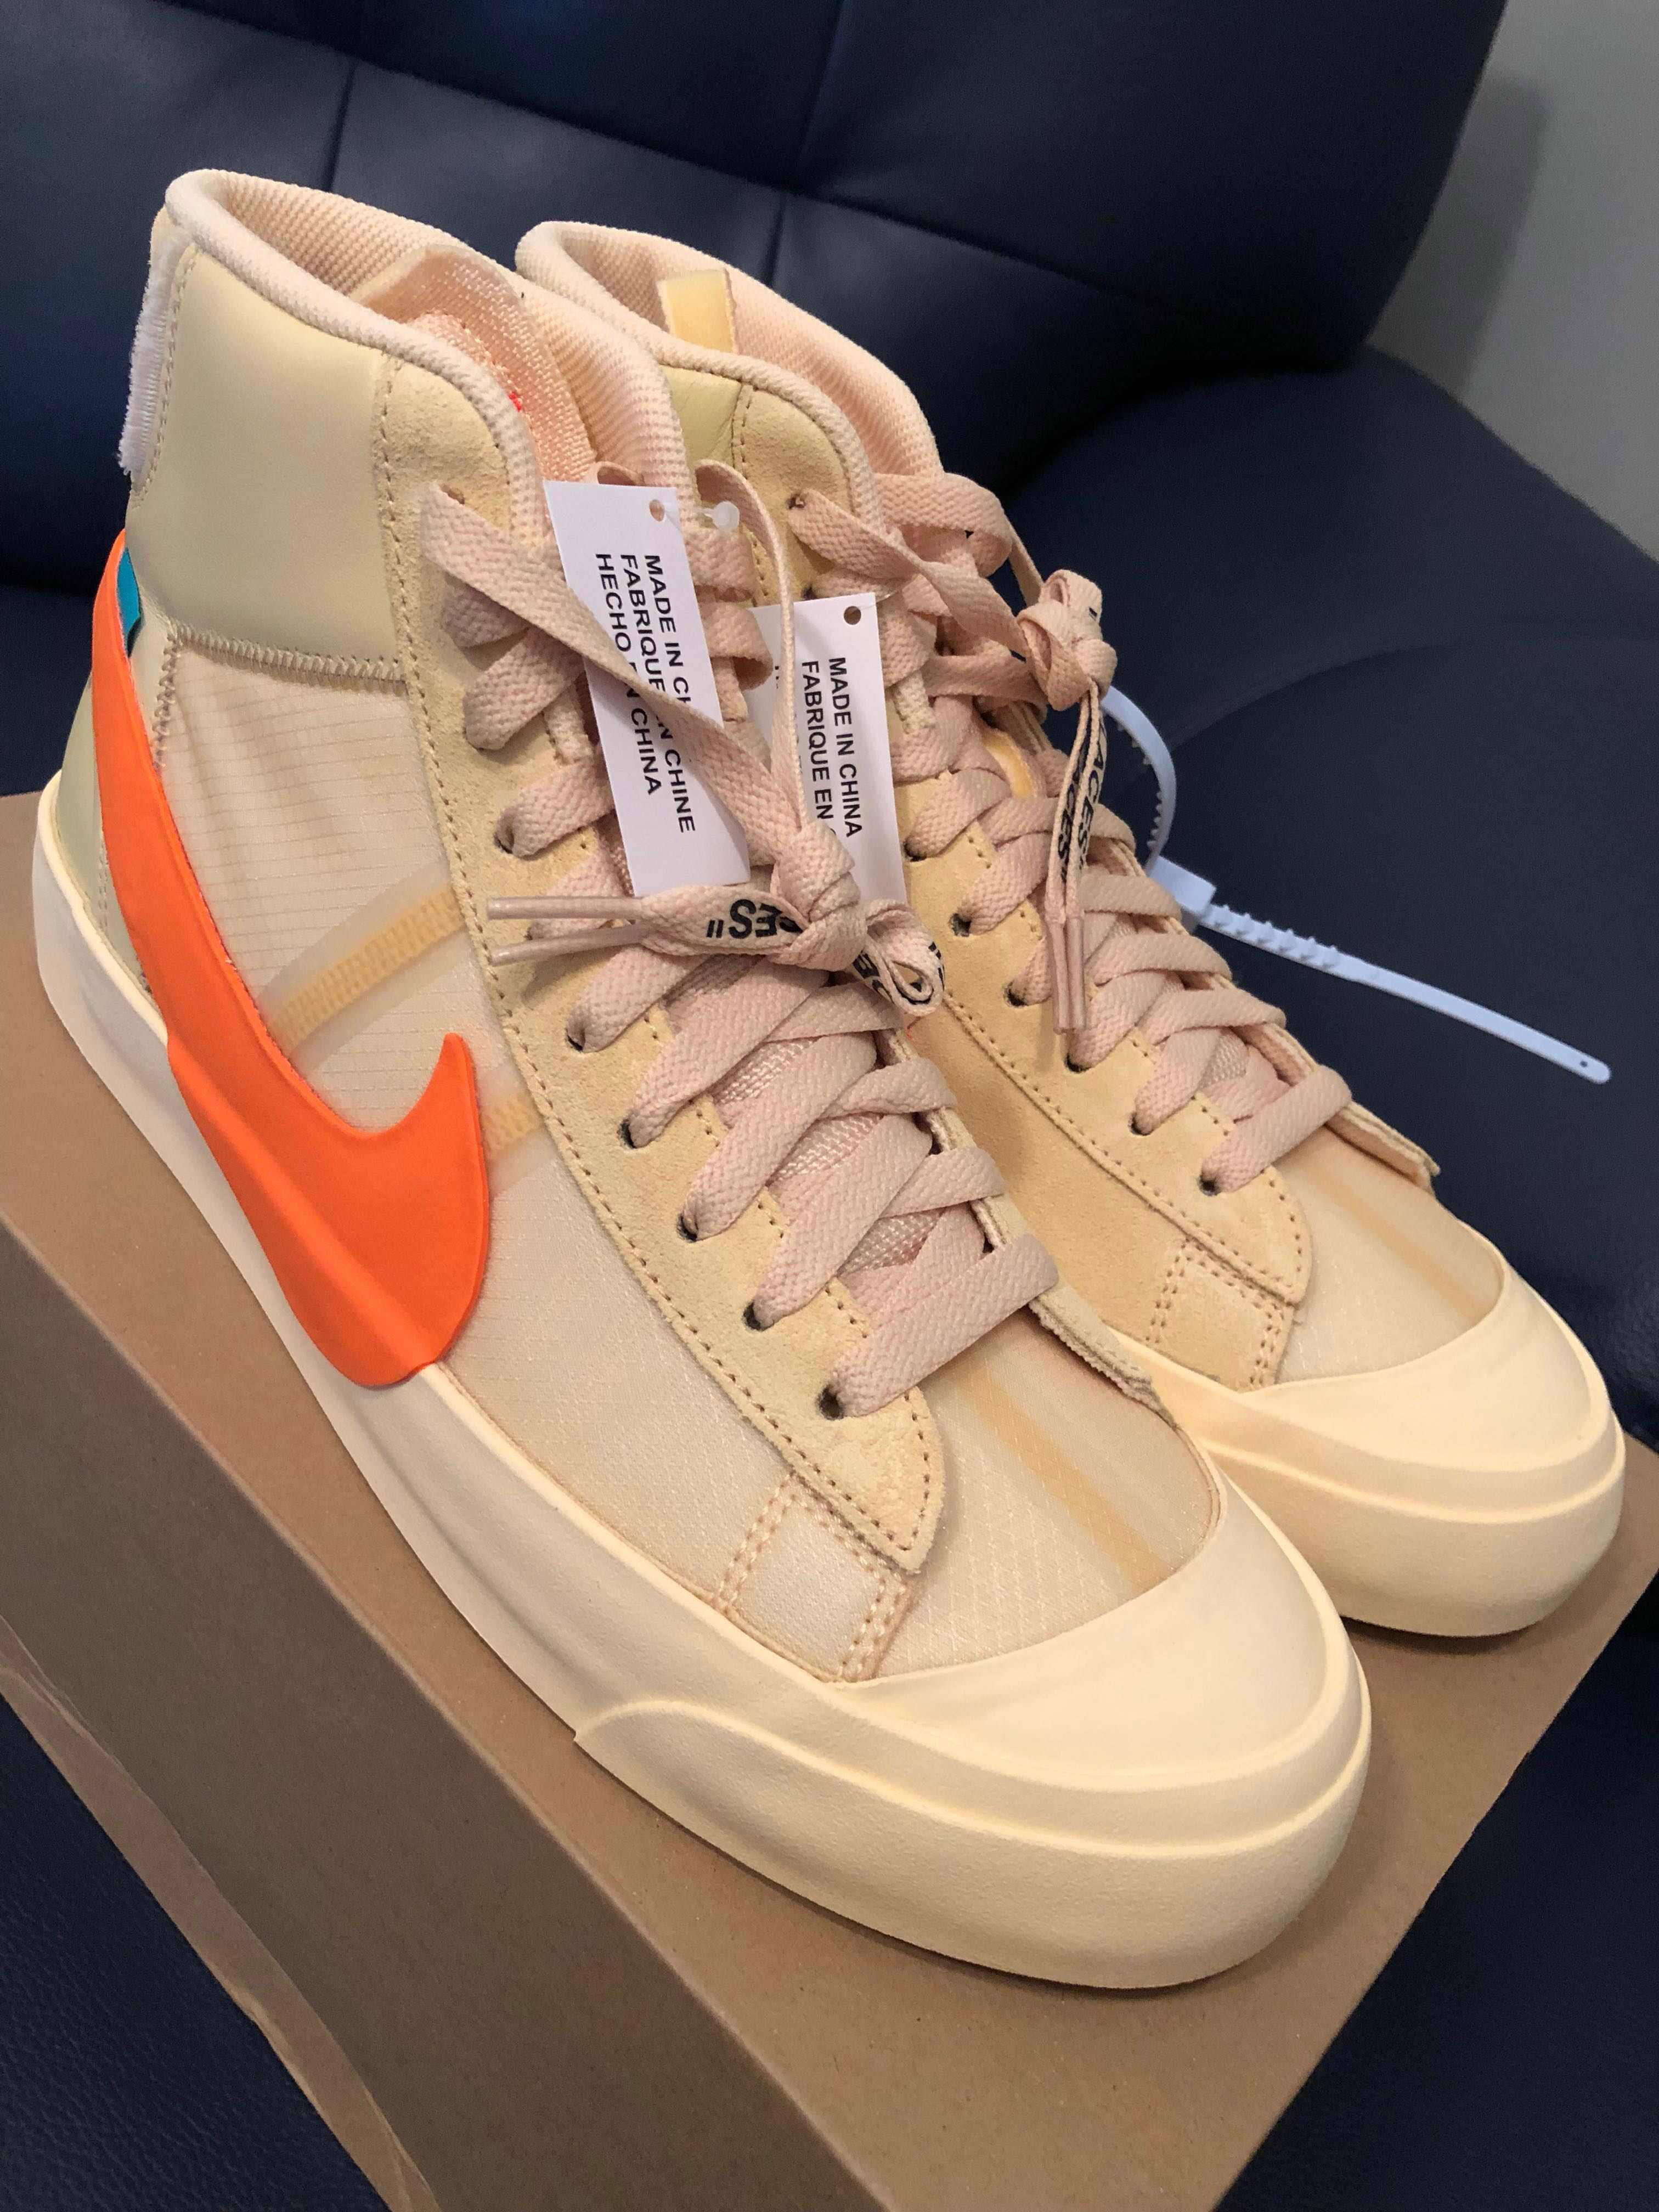 8a045a6bcf8 Nike Blazer Mid Off White All Hallow s Eve US 9.5